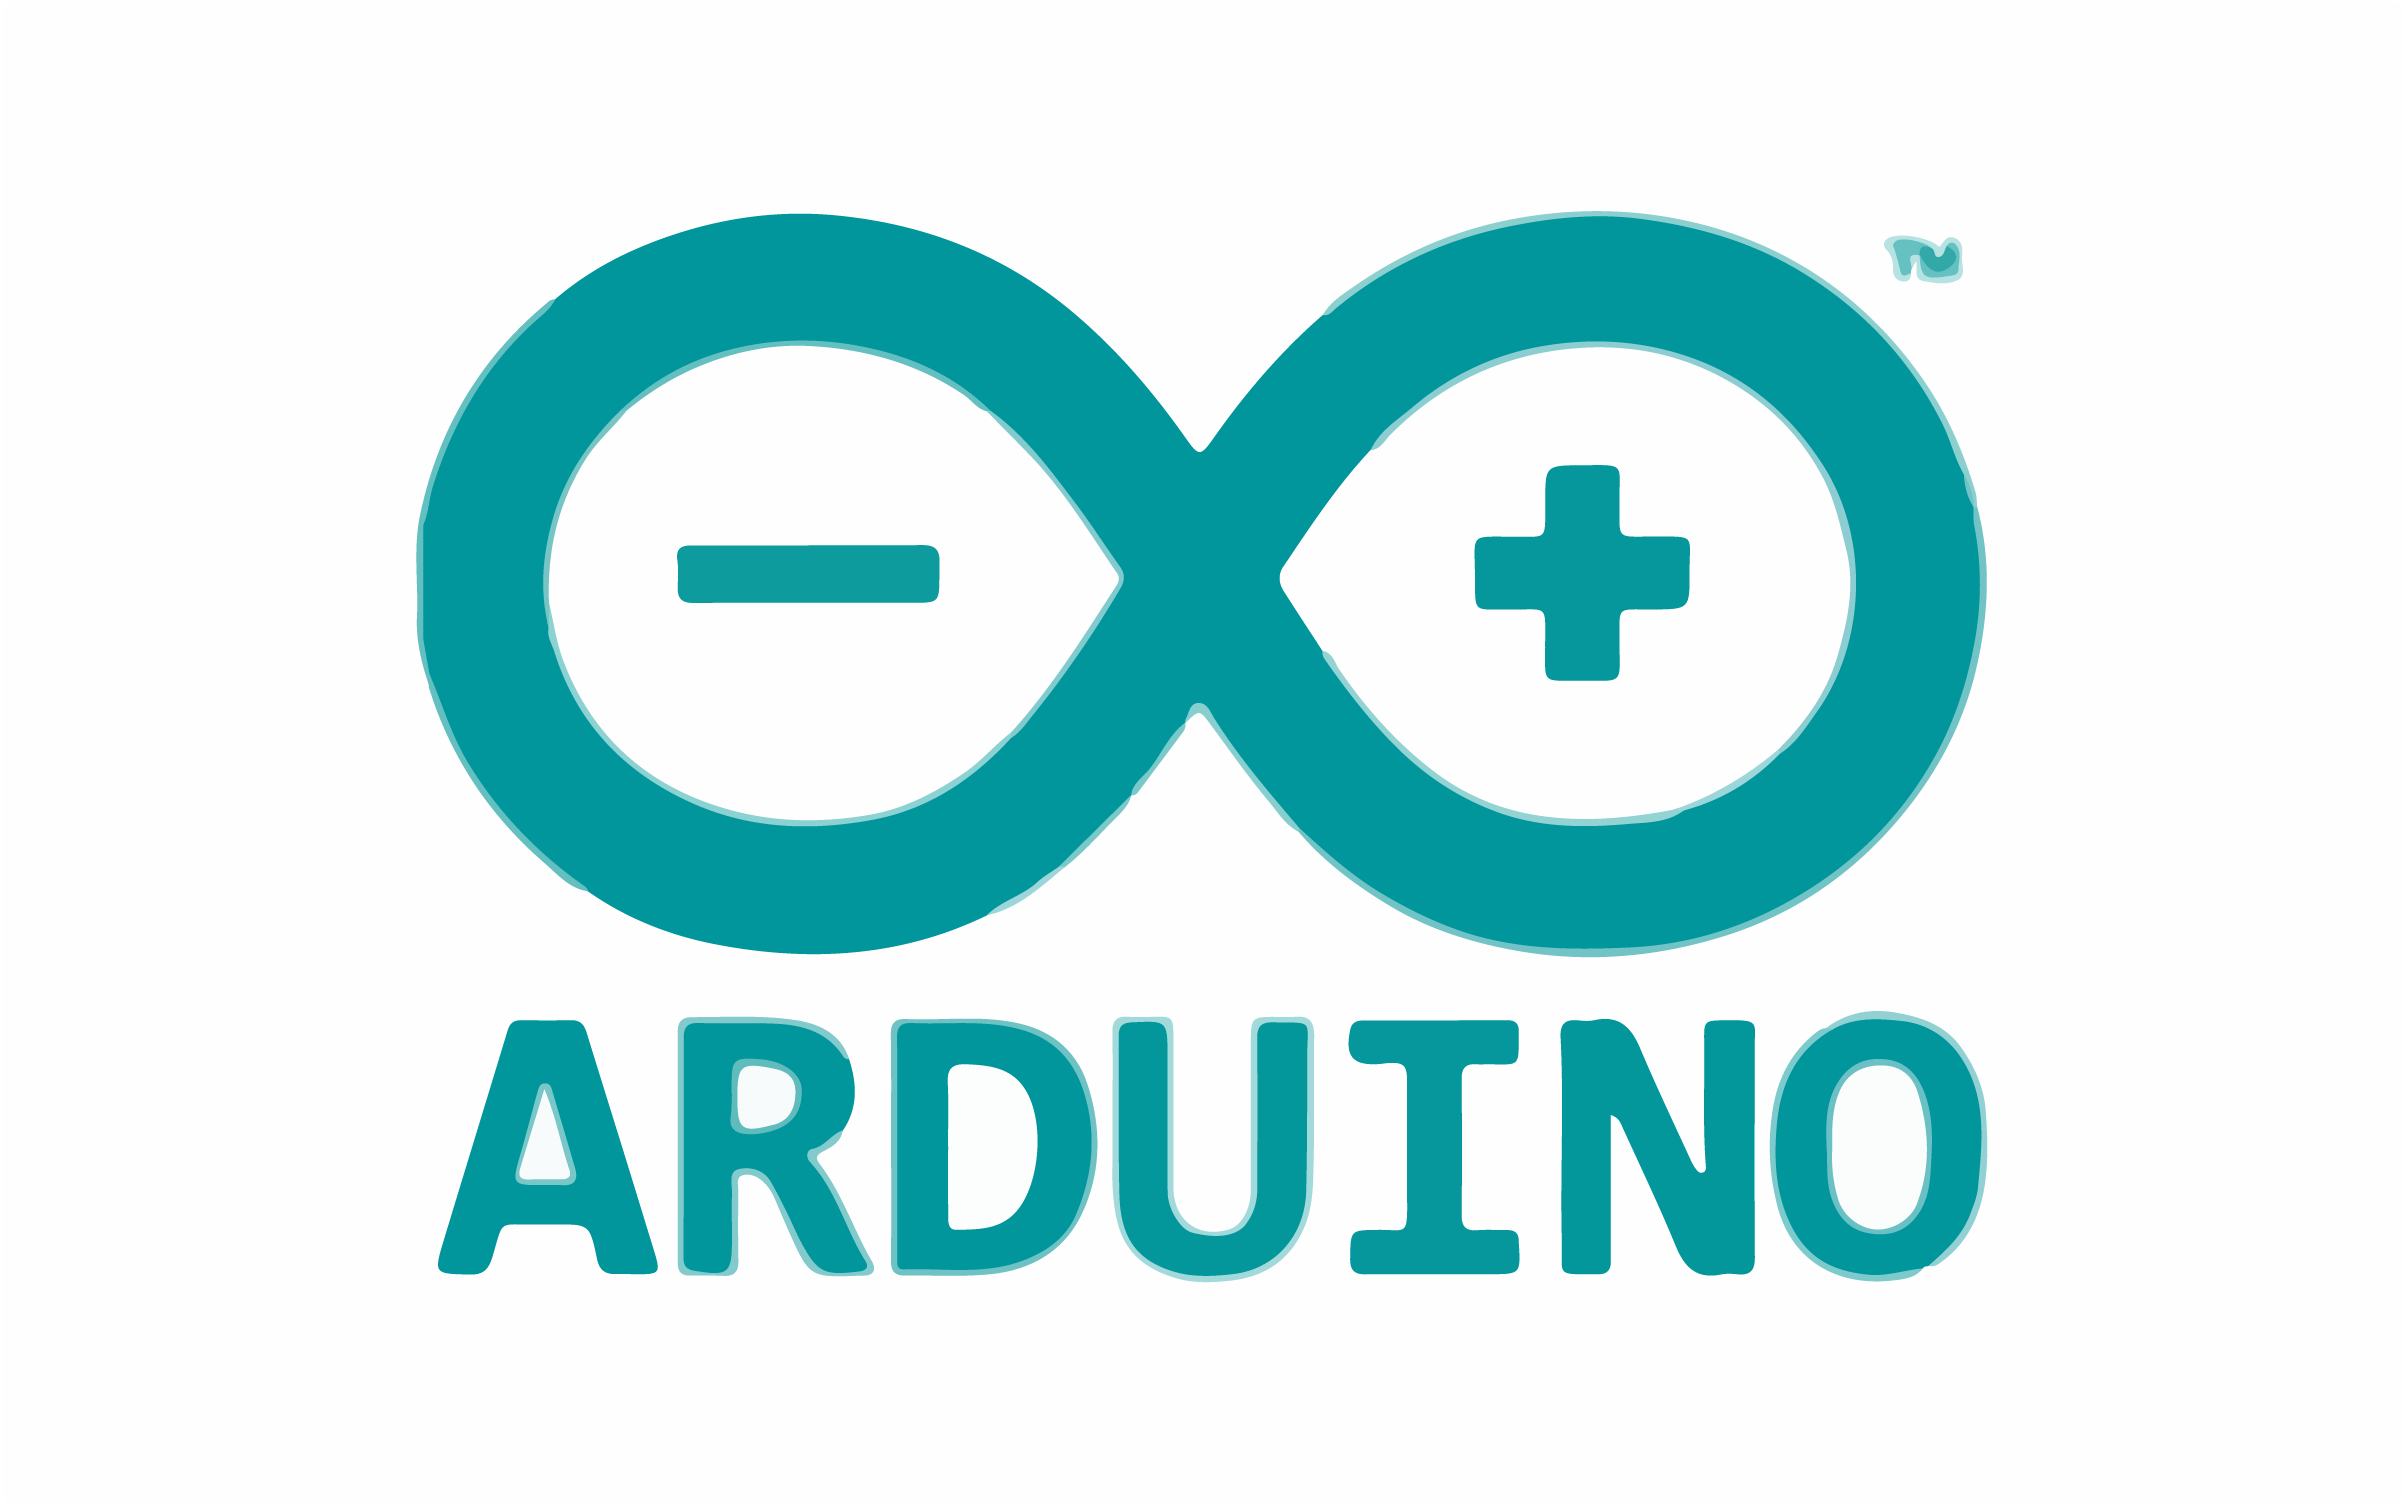 Firmware using Arduino